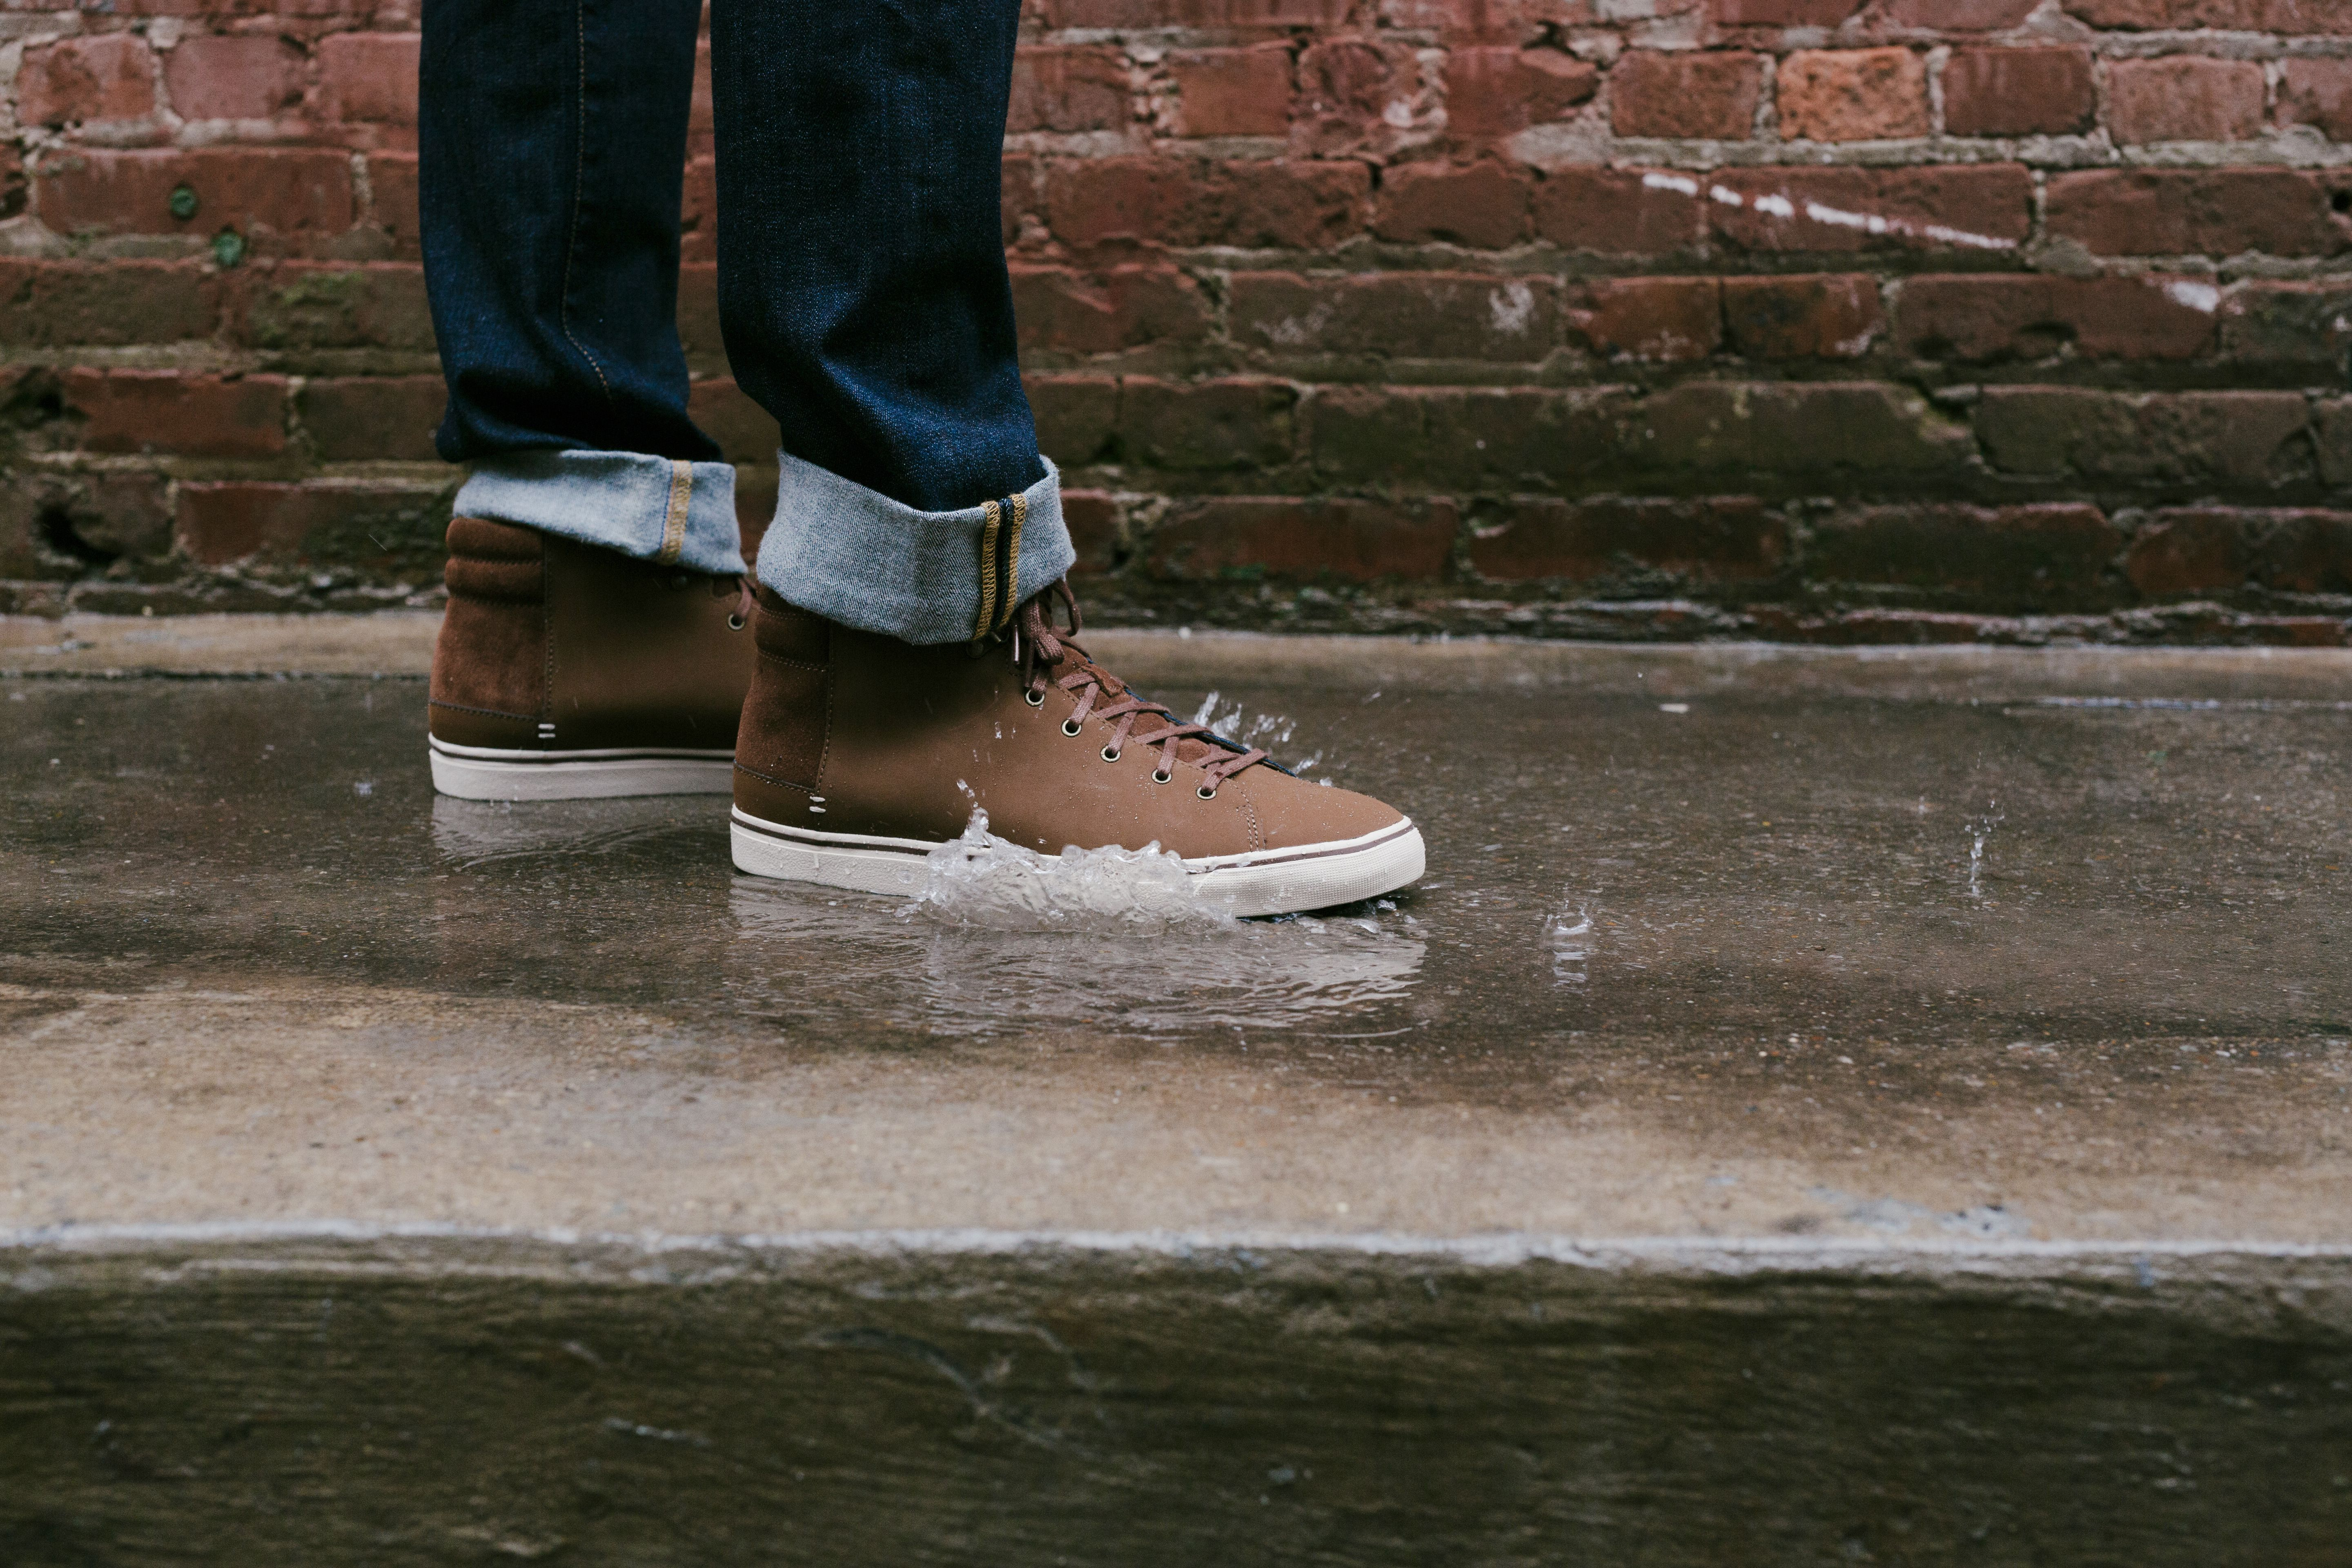 4834ba18692 Friday rain? Good thing our newest sneakers our waterproof. Shop the ...